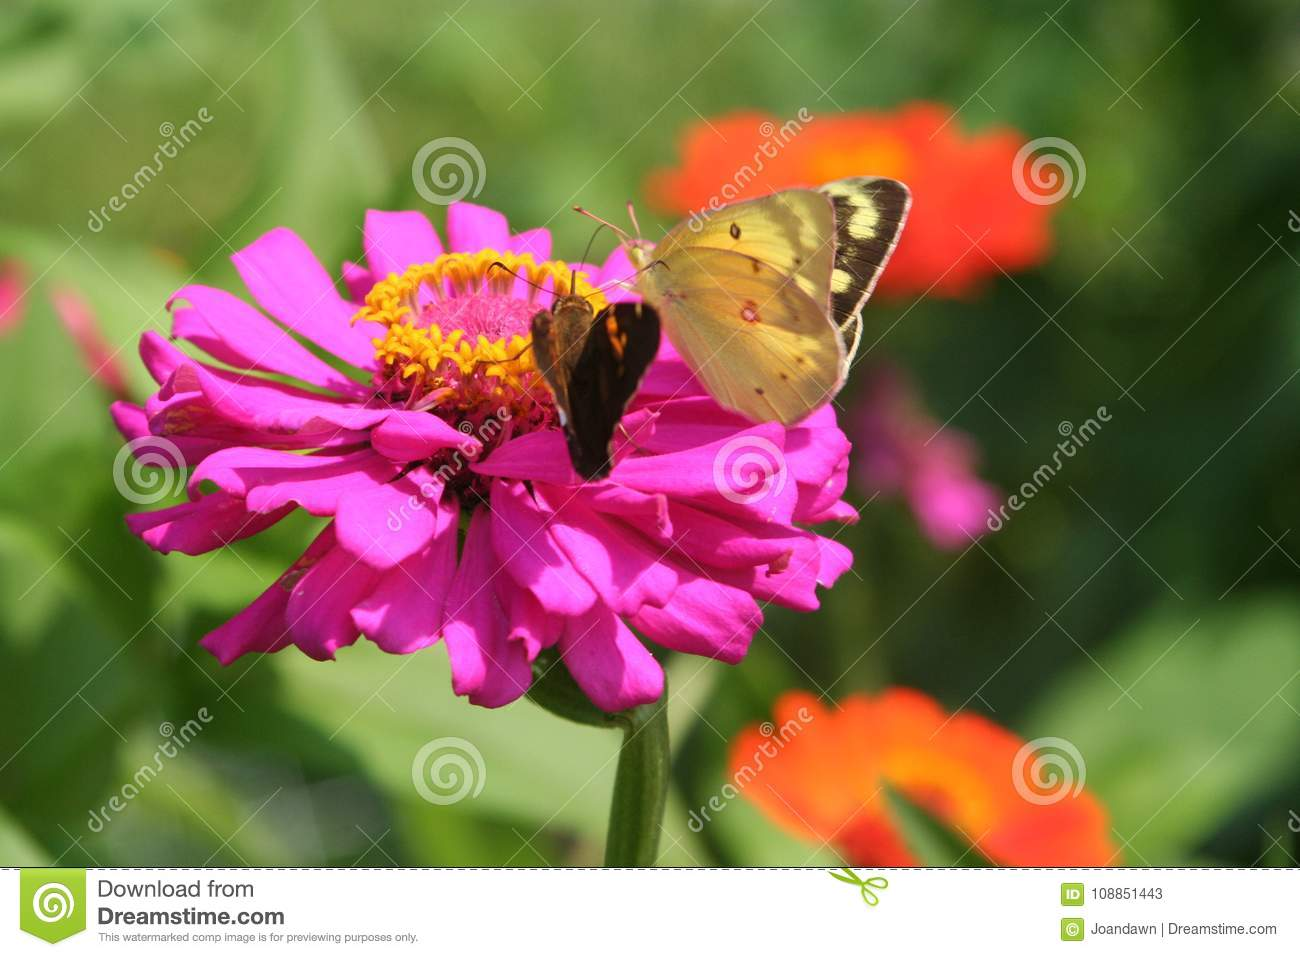 Luminous butterflies collect nectar from colorful zinnias